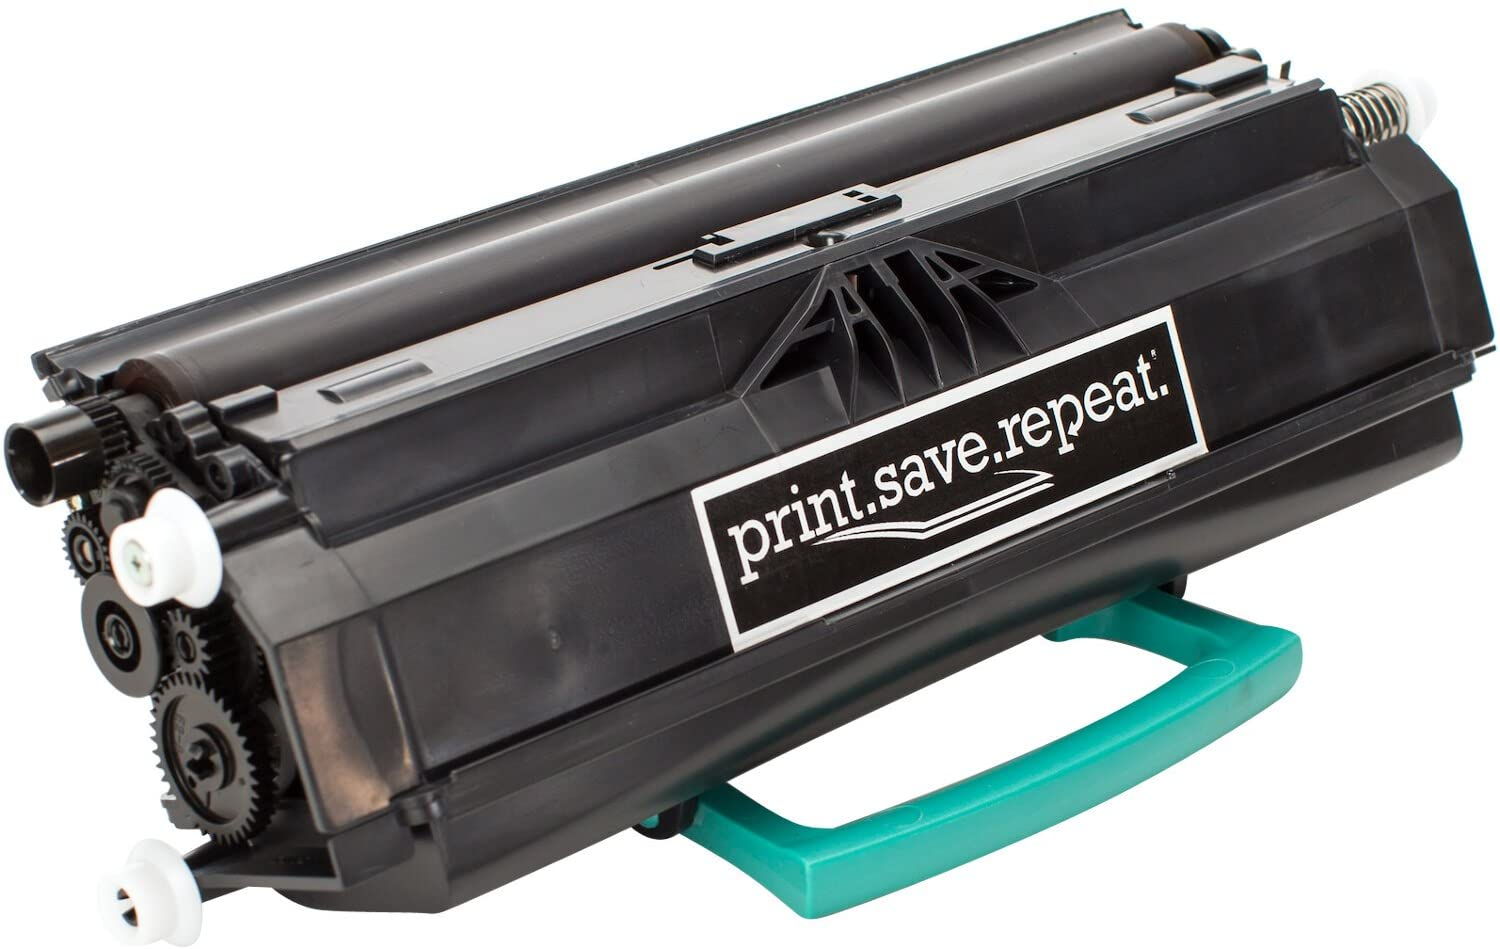 Print.Save.Repeat. Dell RP380 High Yield Remanufactured Toner Cartridge for 1720 [6,000 Pages]